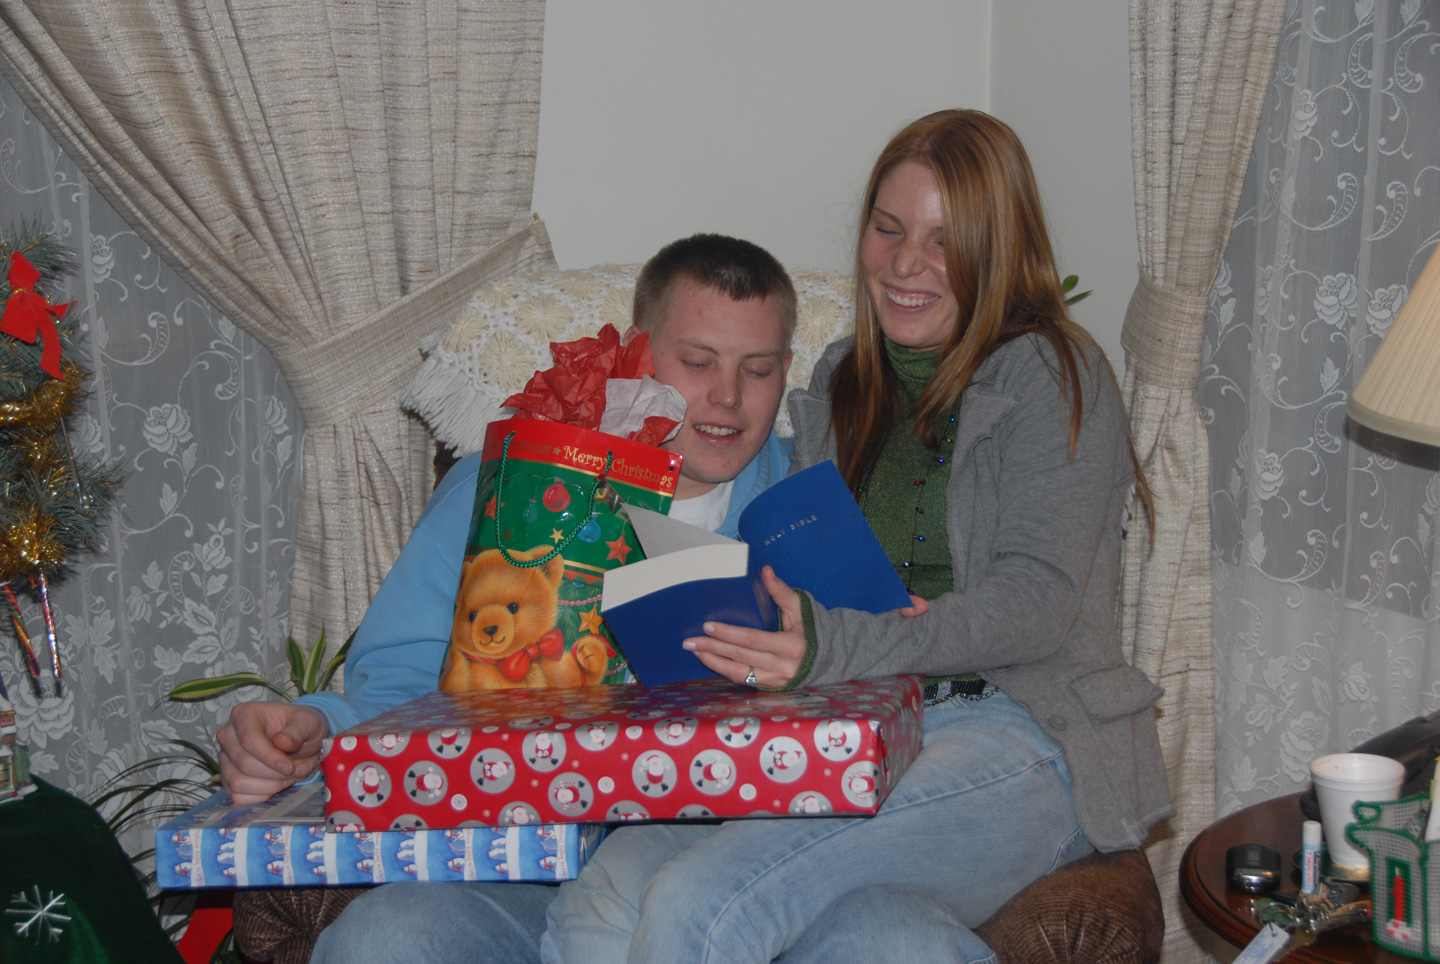 gifts piled on Pat and Fallyn